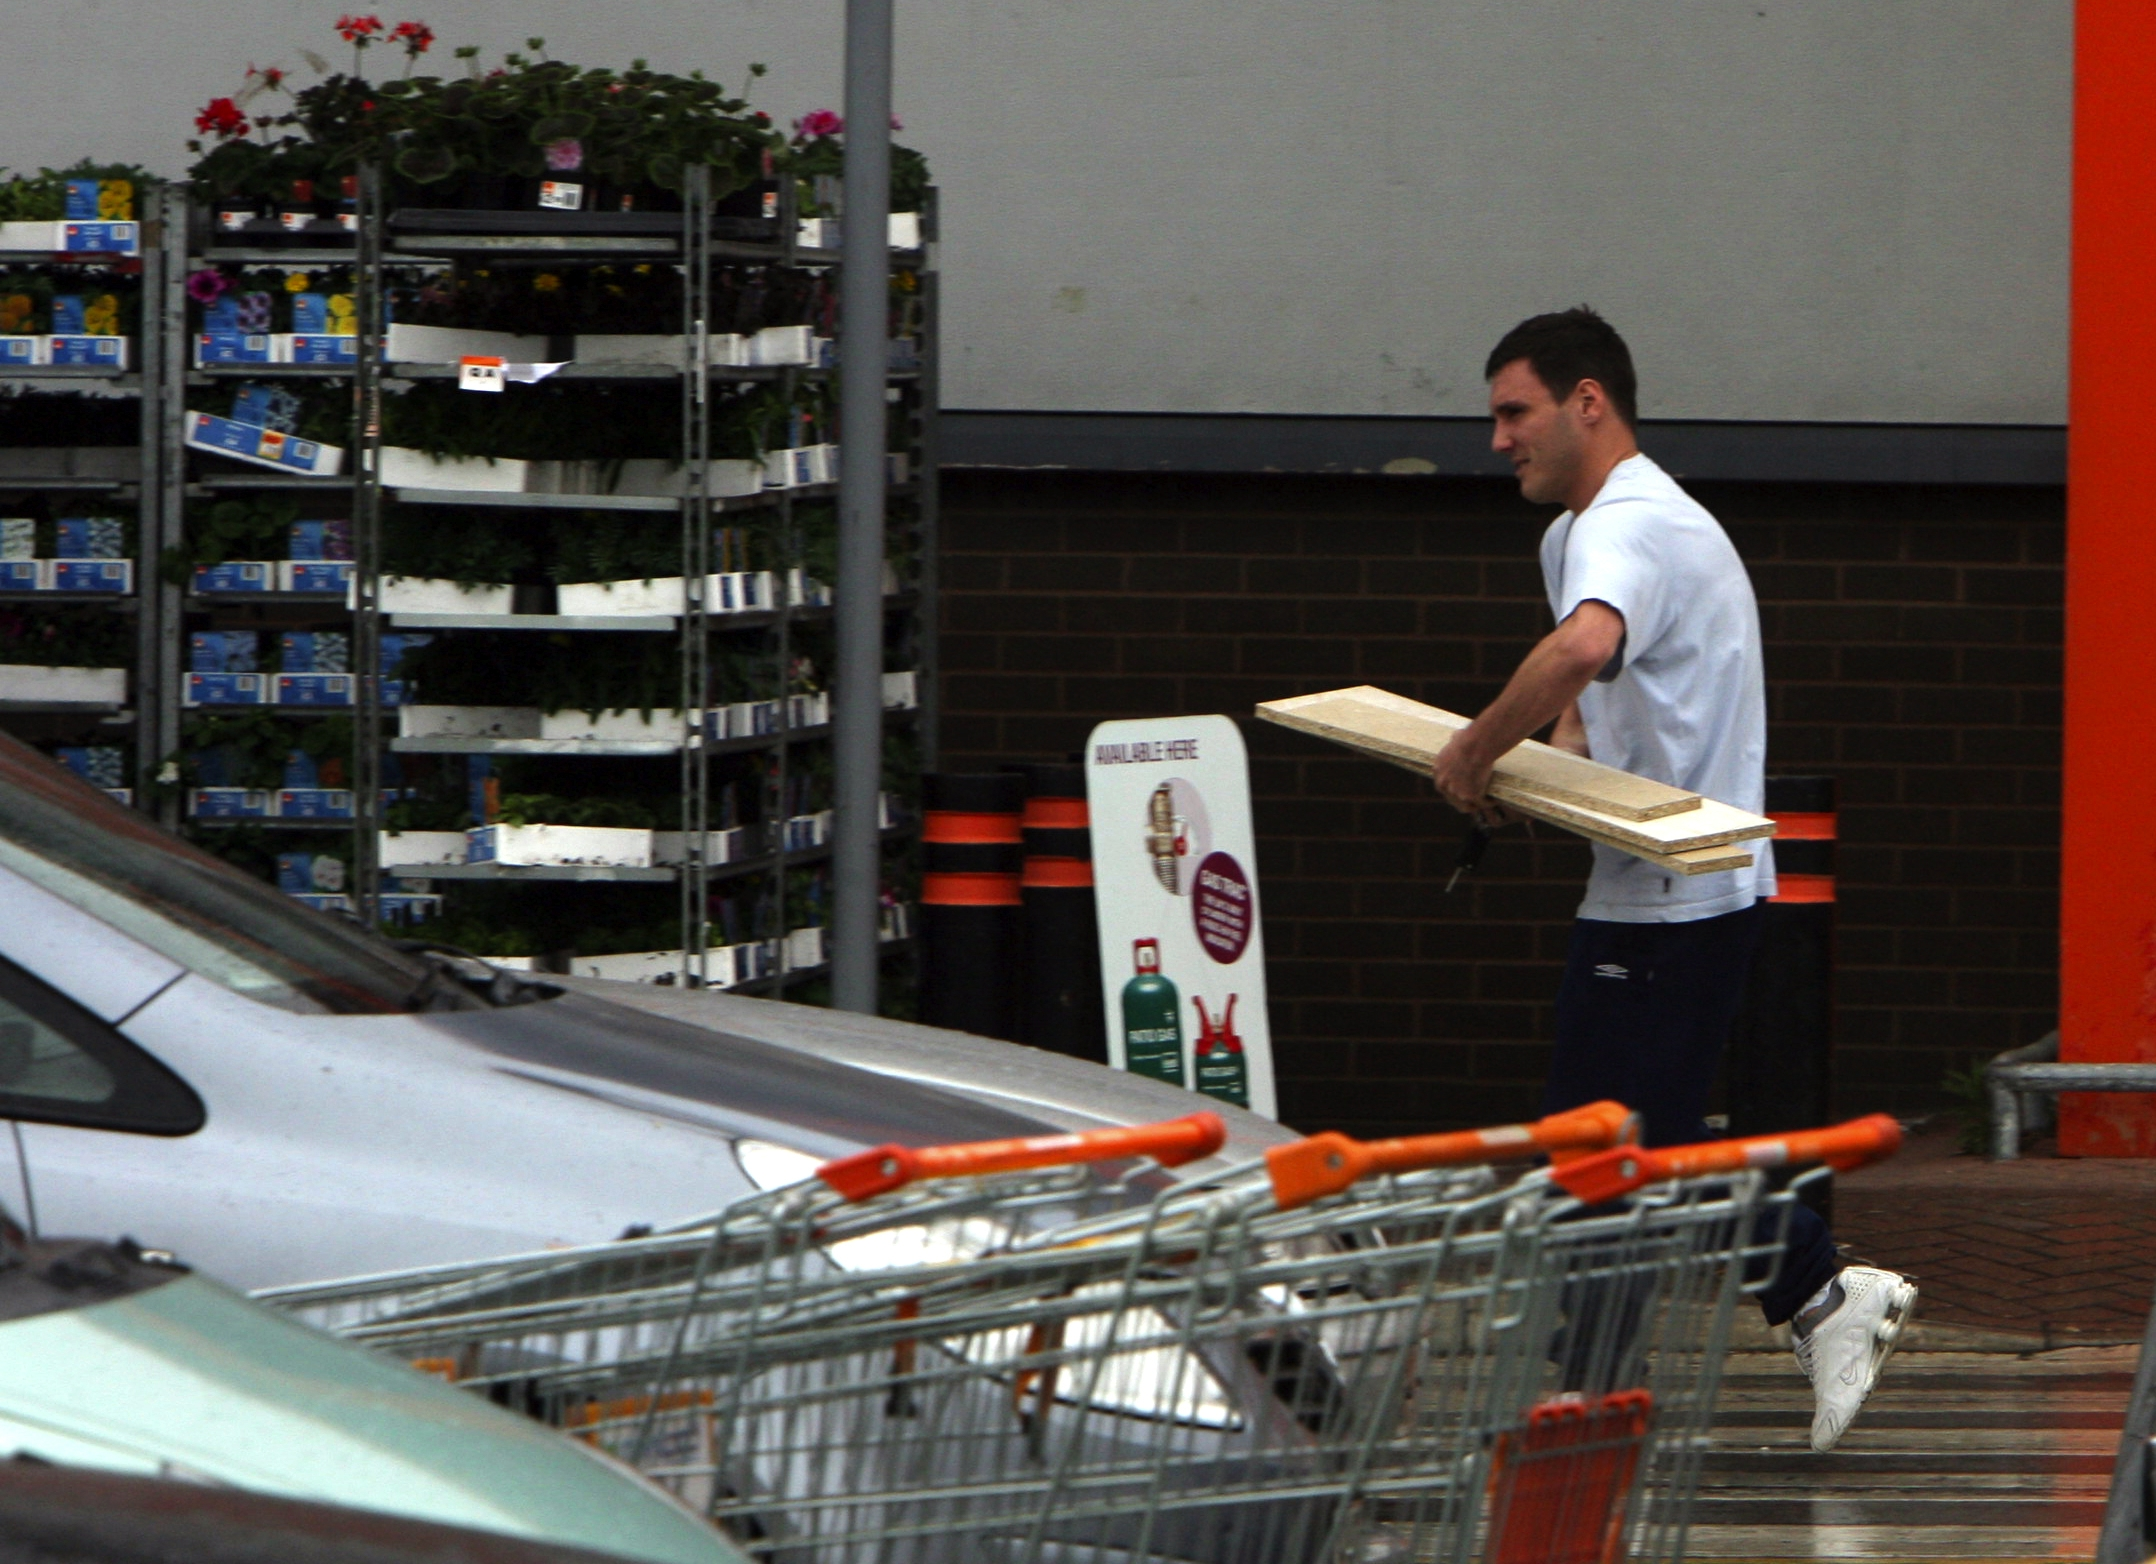 Blake Aldridge leaves the B&Q store in Southampton